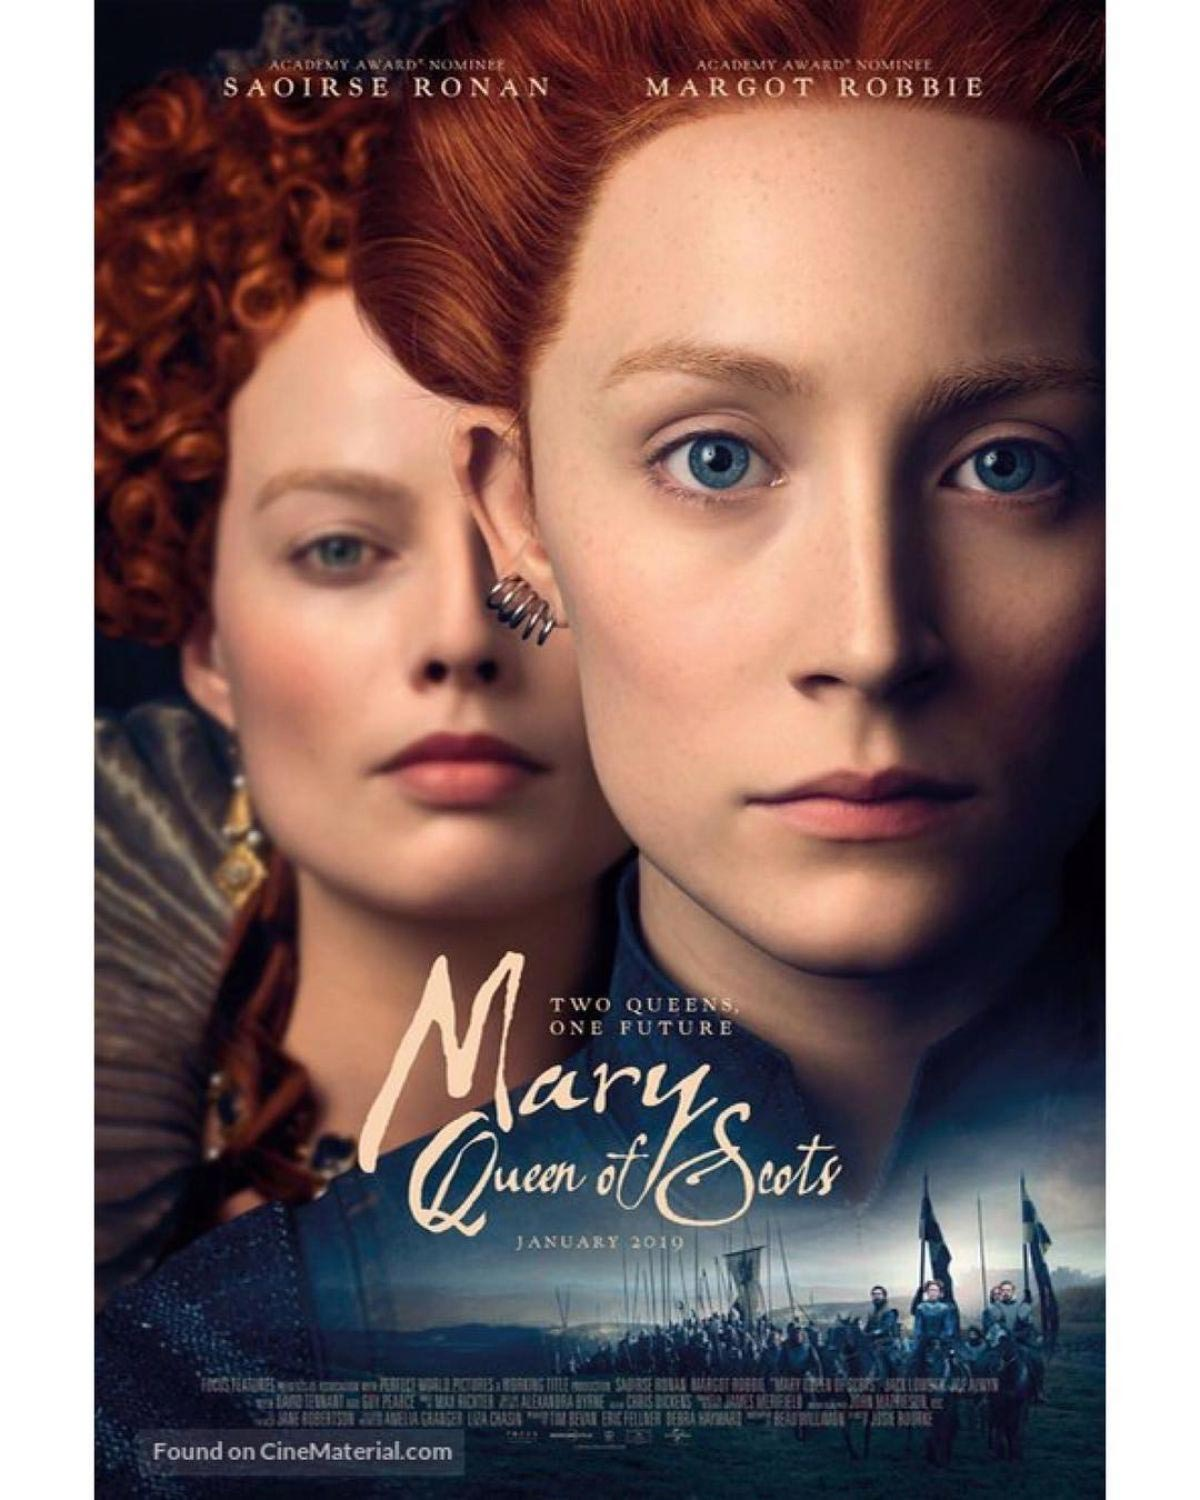 Margot Robbie at Mary Queen of Scots Posters and Promos 2018/12/02 1